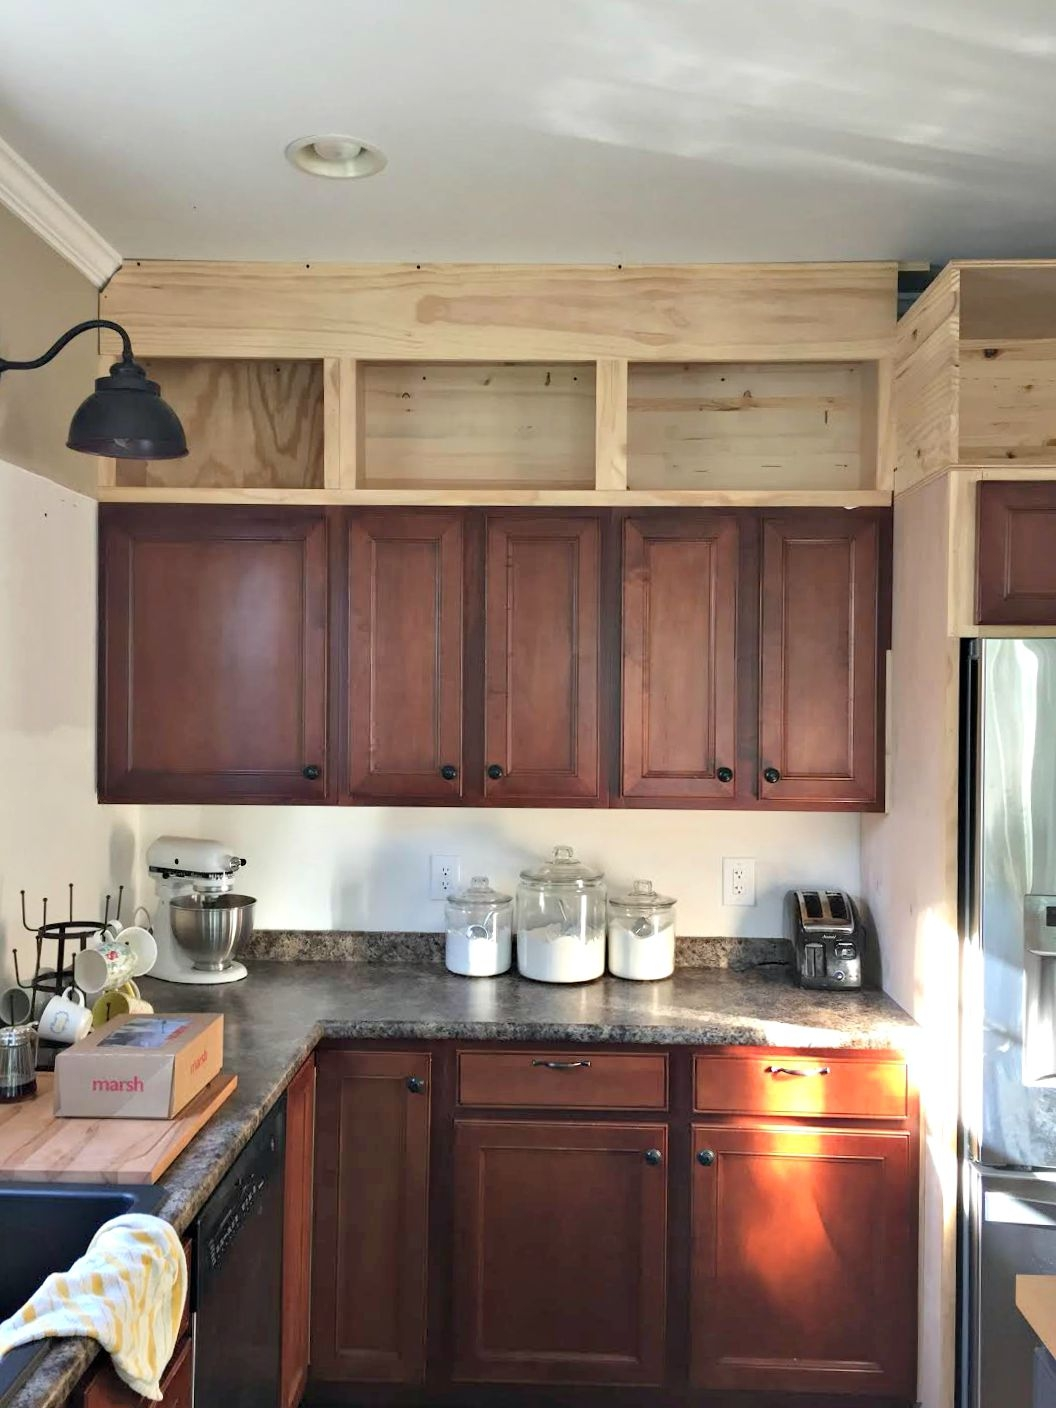 Adding Kitchen Cabinets Above Existing Cabinets